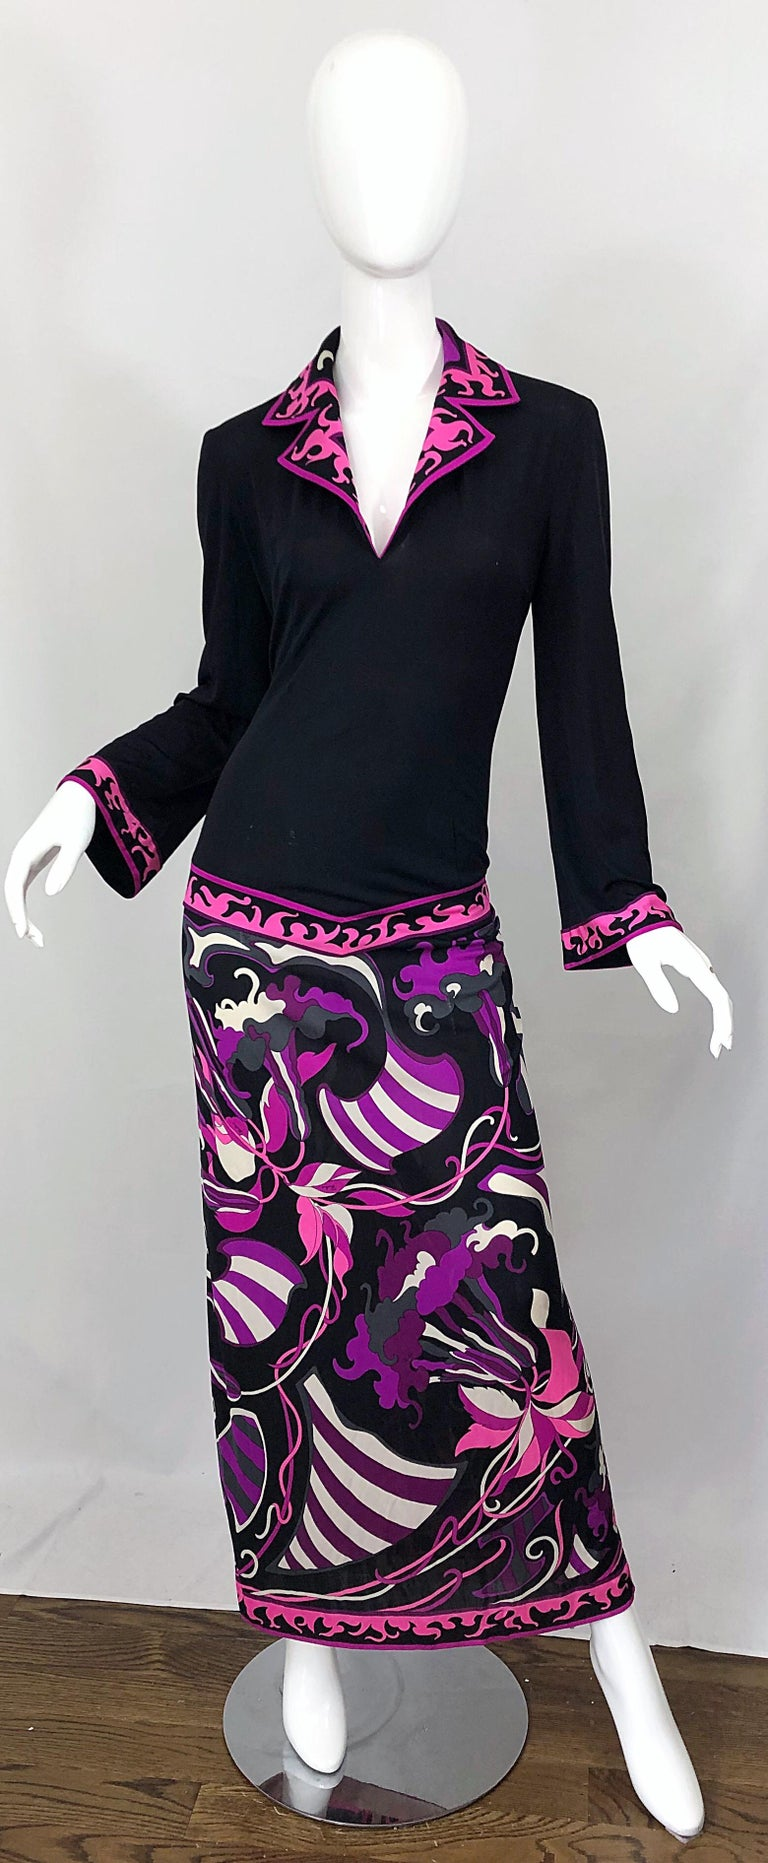 Emilio Pucci 1970s Silk Jersey Pink Purple Black Vintage 70s Maxi Dress For Sale 10